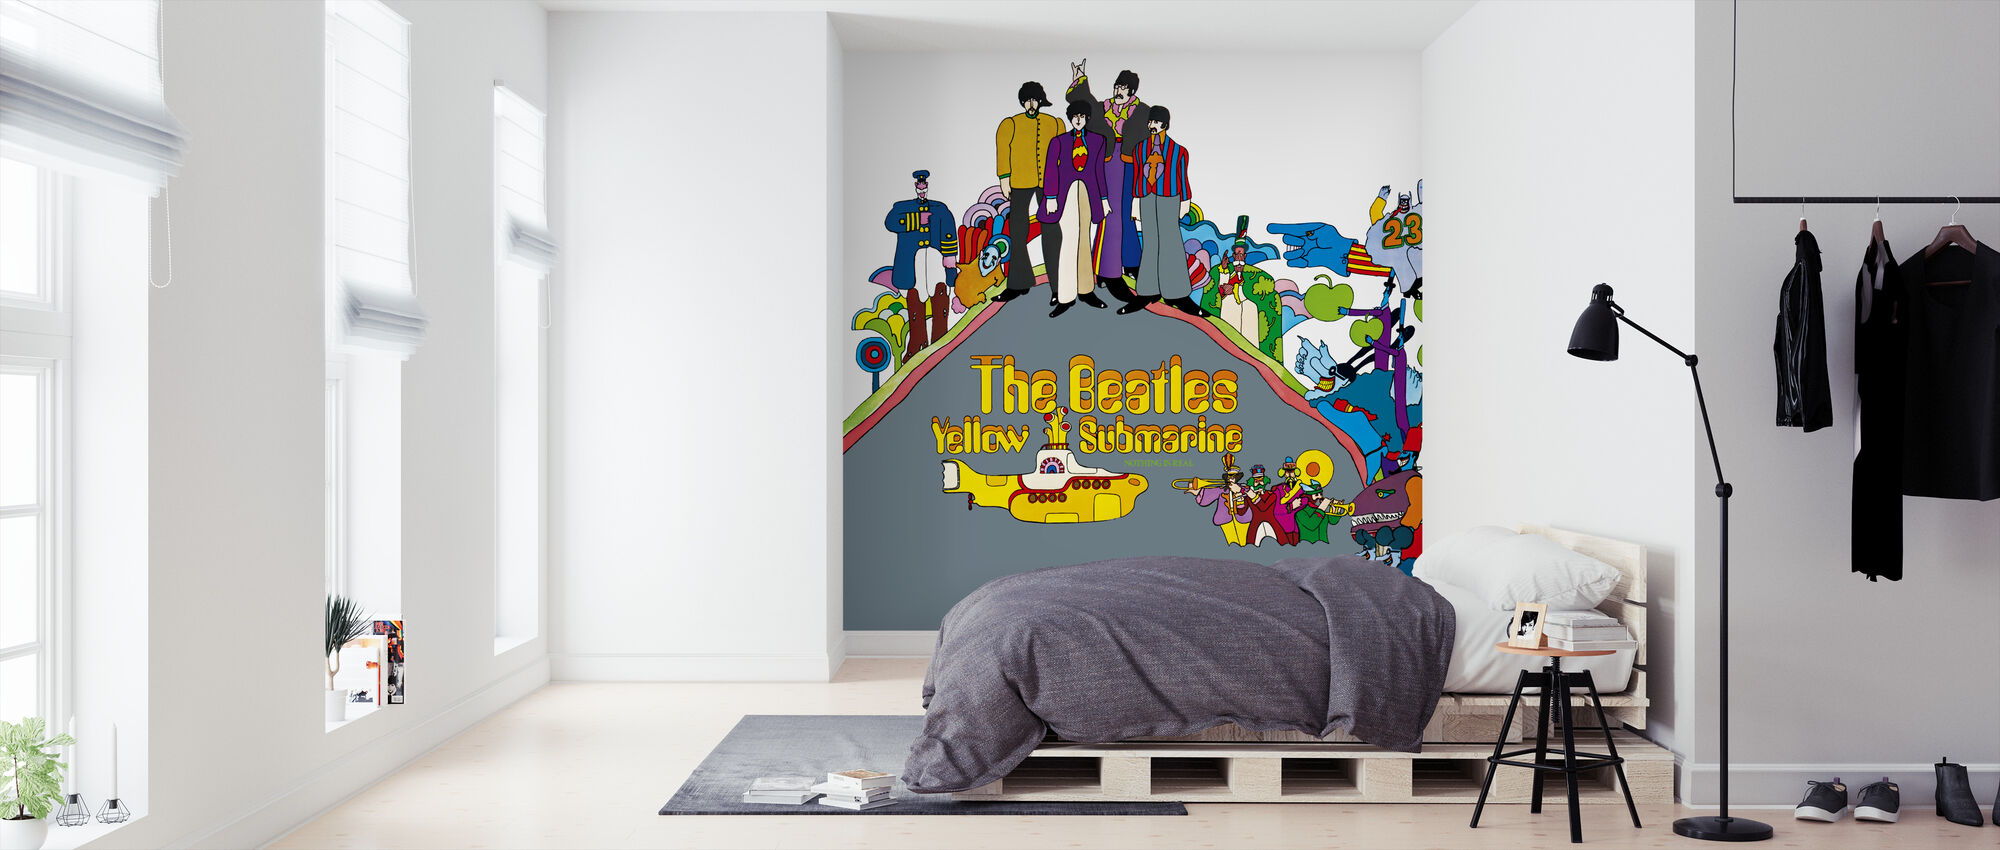 Beatles Yellow Submarine Decorate With A Wall Mural Photowall